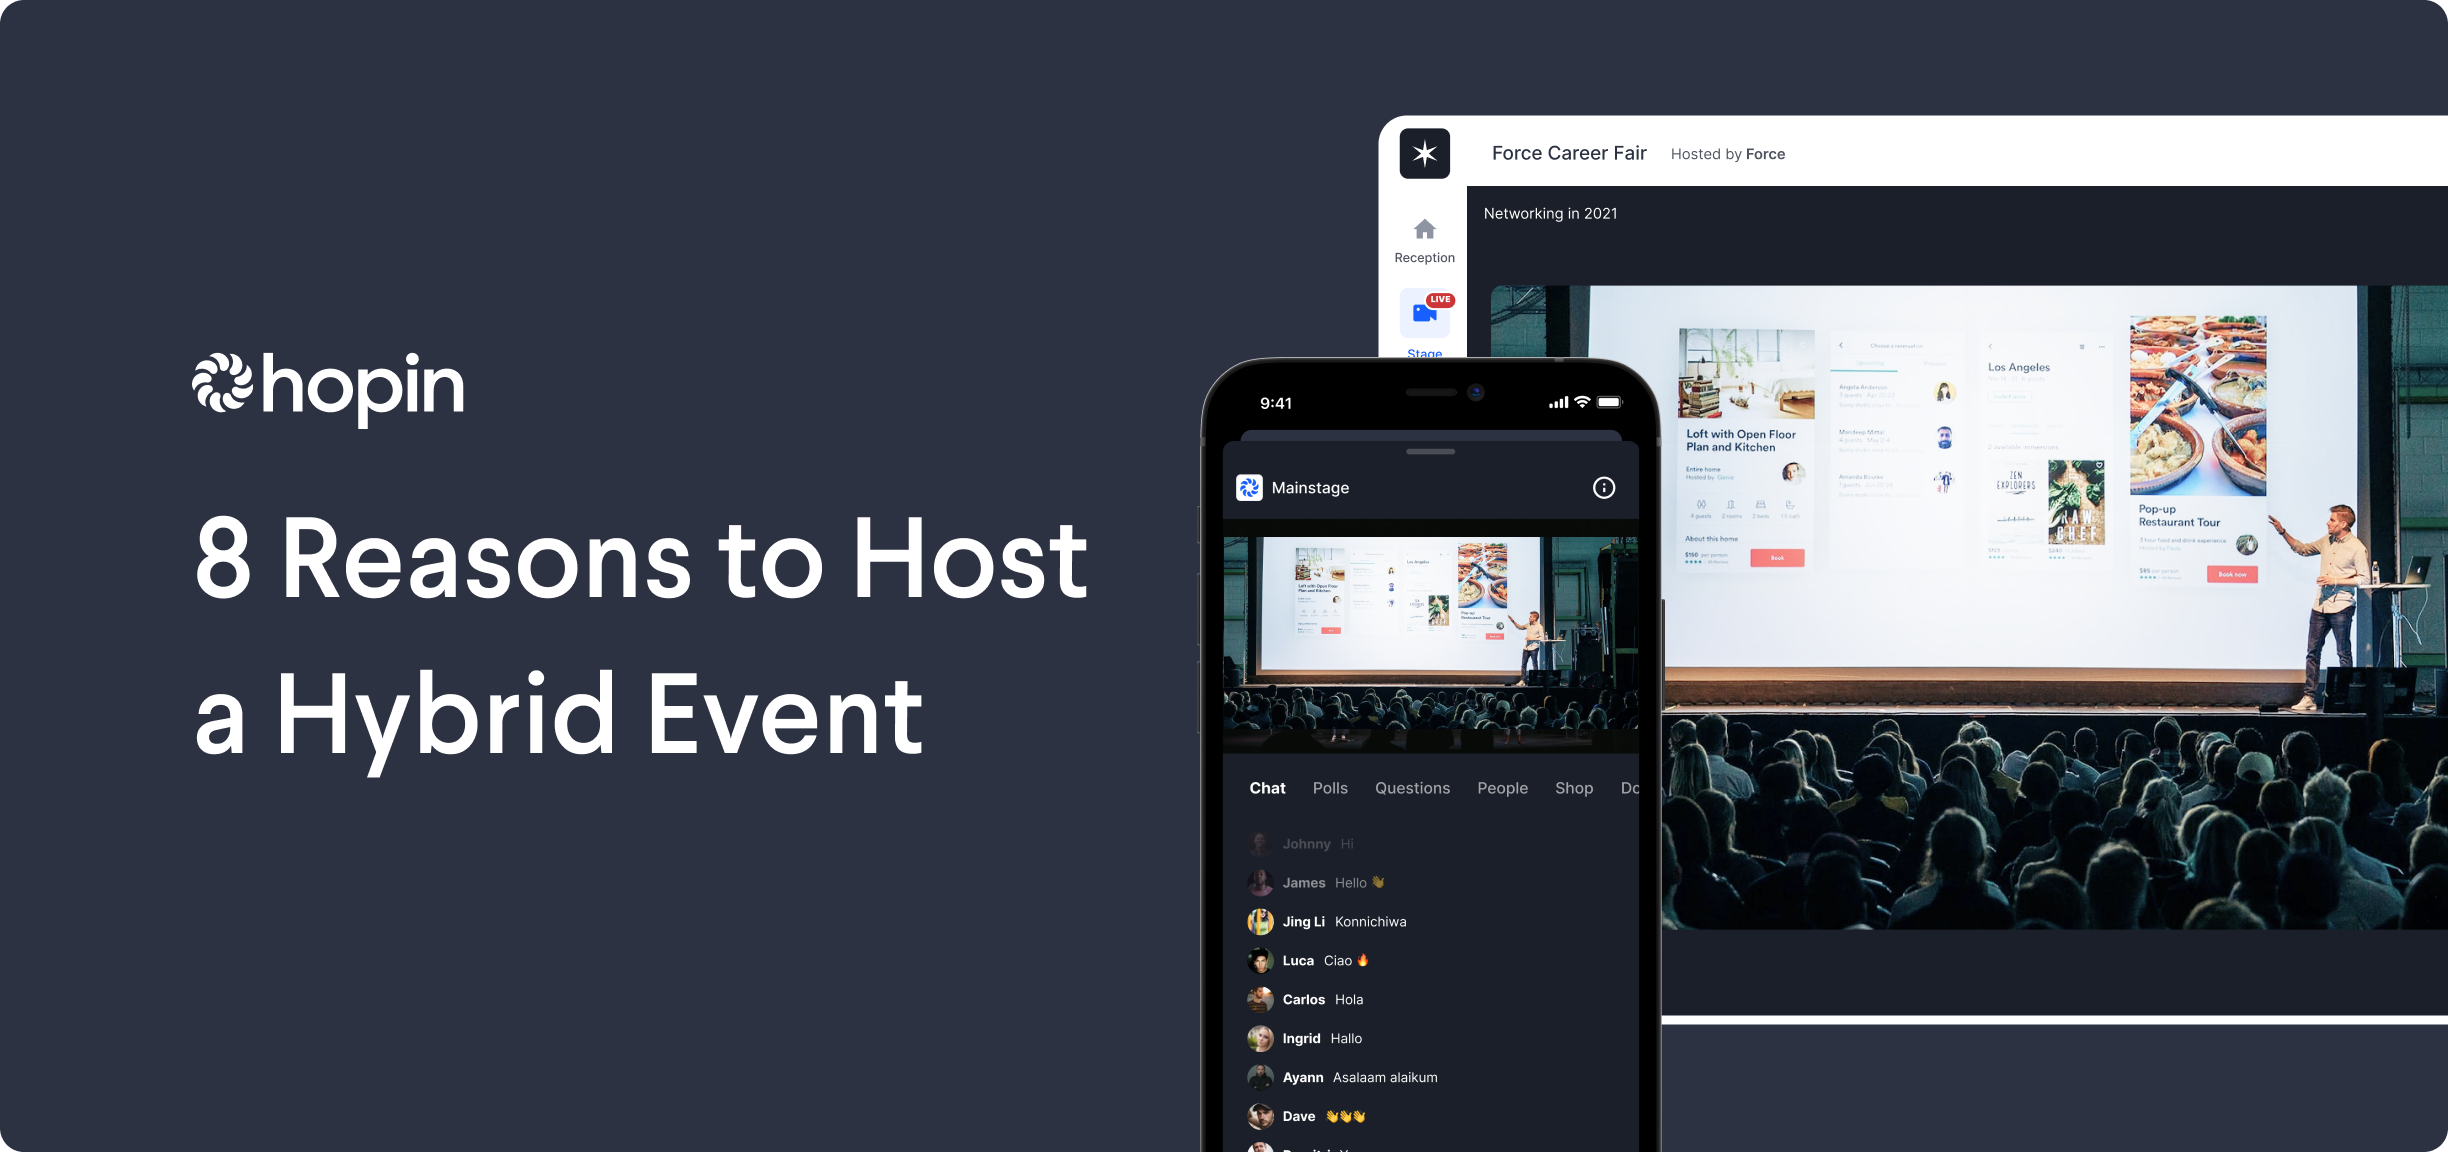 Hybrid events give you the best of both worlds: the human connection of in-person and the reach, inclusiveness, and ROI of virtual. Here are the main advantages of hybrid.